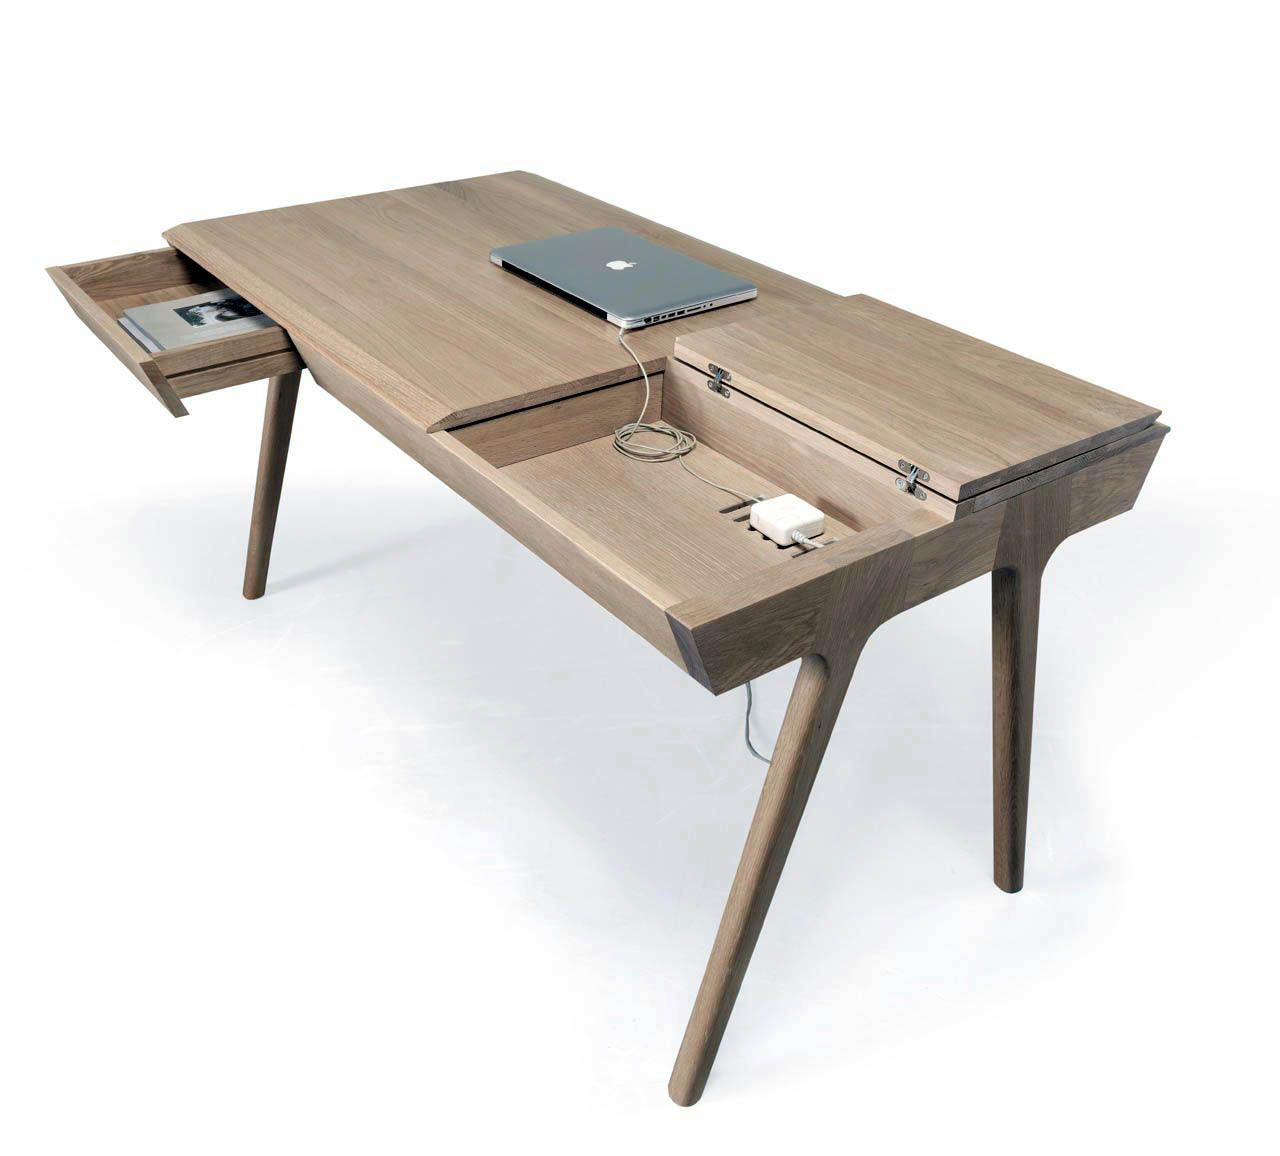 Find Solid Wood Computer Desk With Keyboard Tray That Look Beautiful Solid Wood Desk Resource Furniture Desk Design